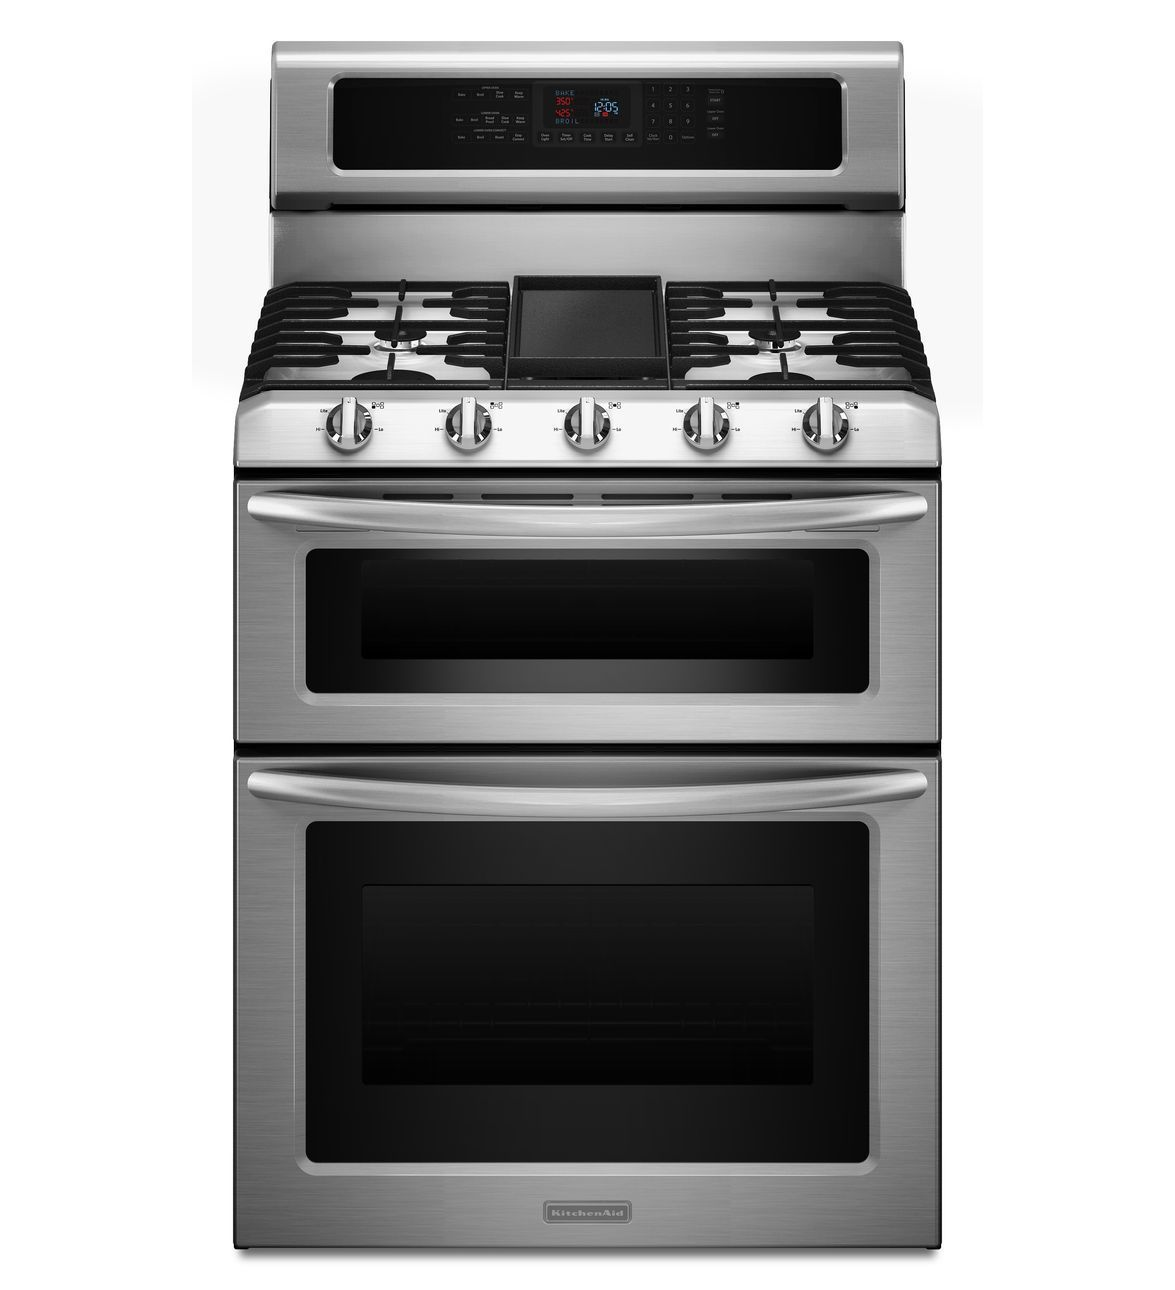 KitchenAid® 30 Inch, 5 Burner Freestanding Double Oven Range With  Even Heat™ Convection. My Mom Has This Oven And Loves It. And I Canu0027t Wait  To Go Back To A ...